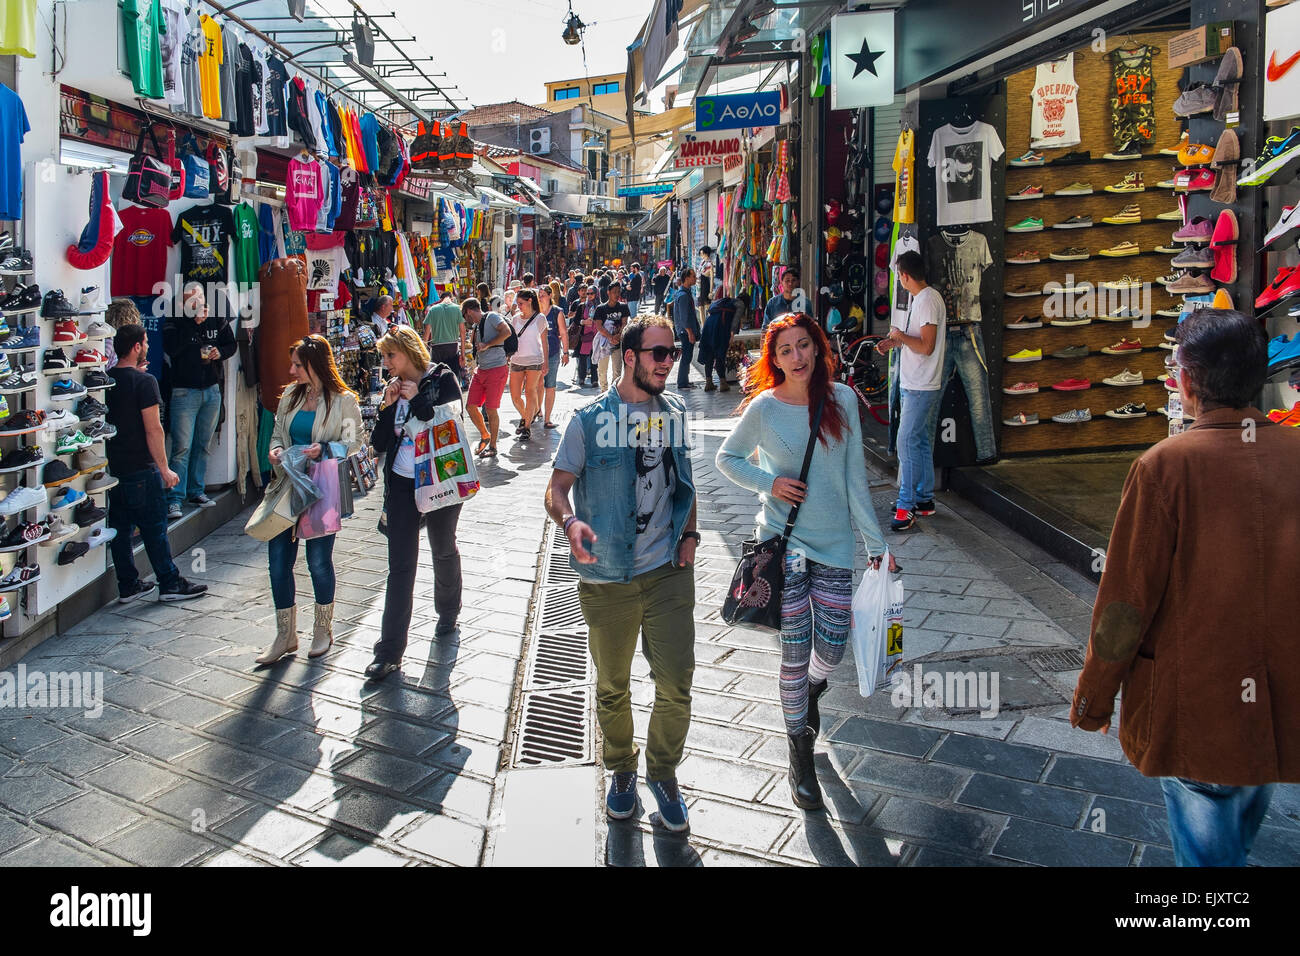 casual people casually walking strolling browsing shopping street market souk athens greece - Stock Image